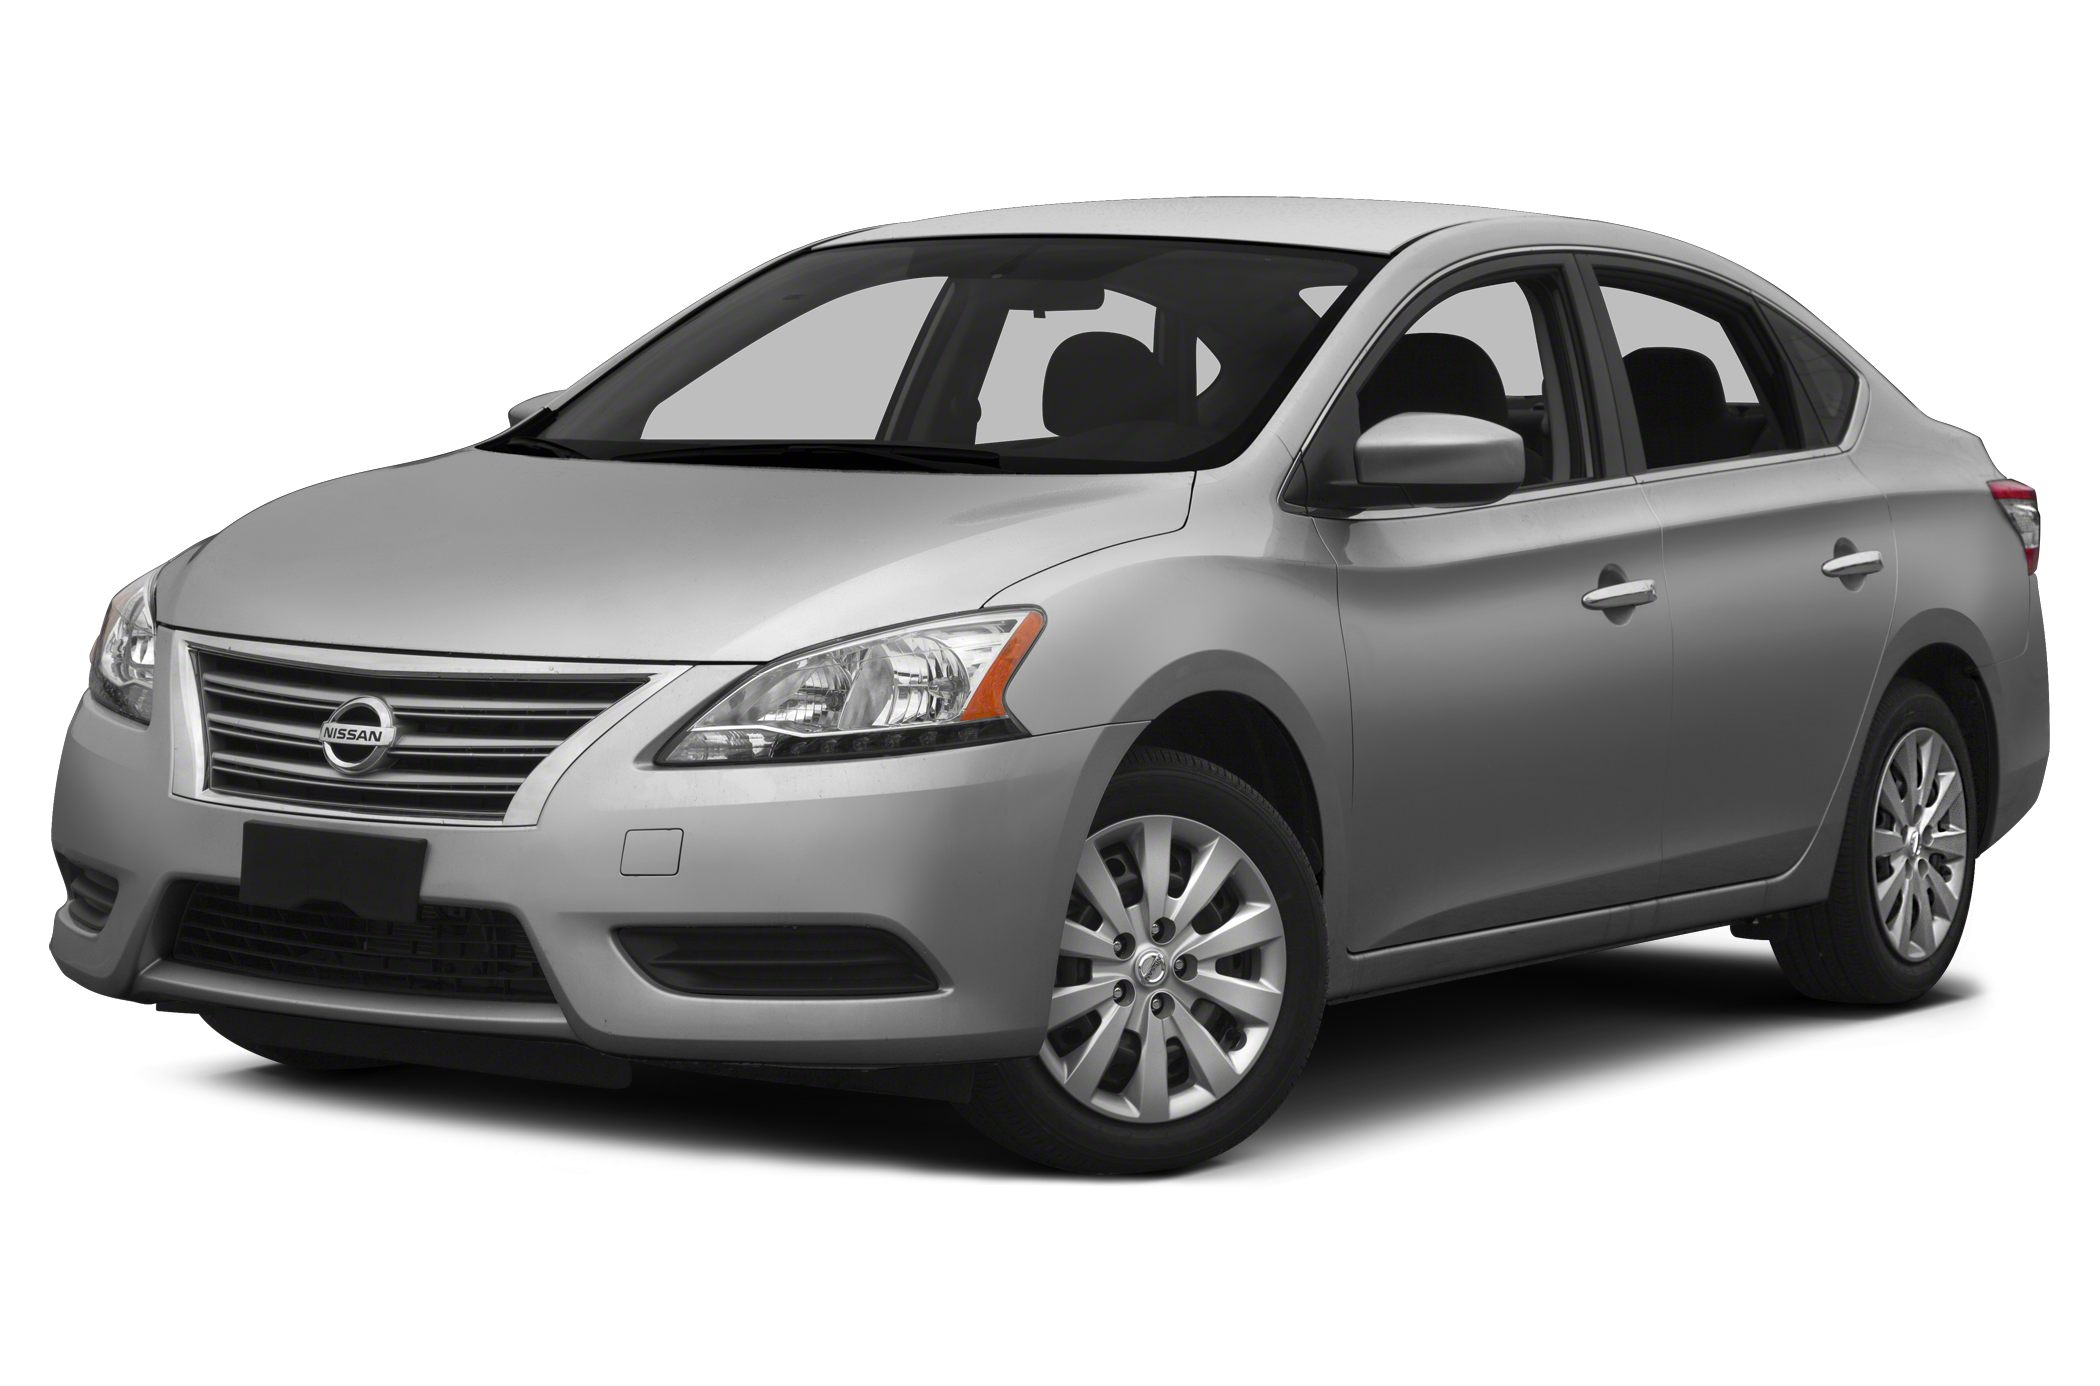 2013 Nissan Sentra  SV EDITION LOW MILES HEATED SEATS BLUETOOTH PANDORA RADIO SHOWS LIKE NEW